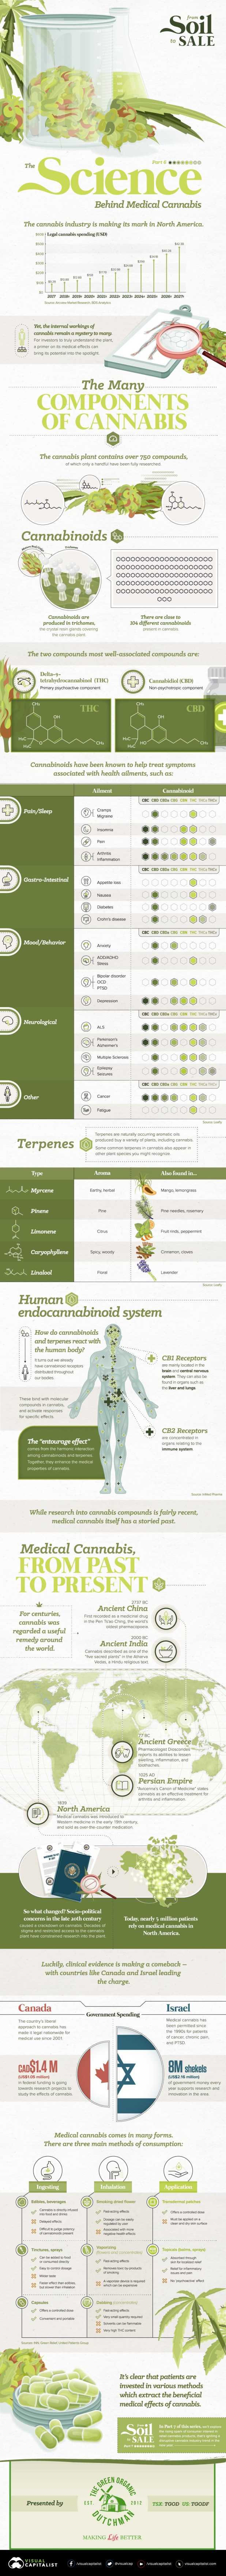 The Science Behind Medical Cannabis